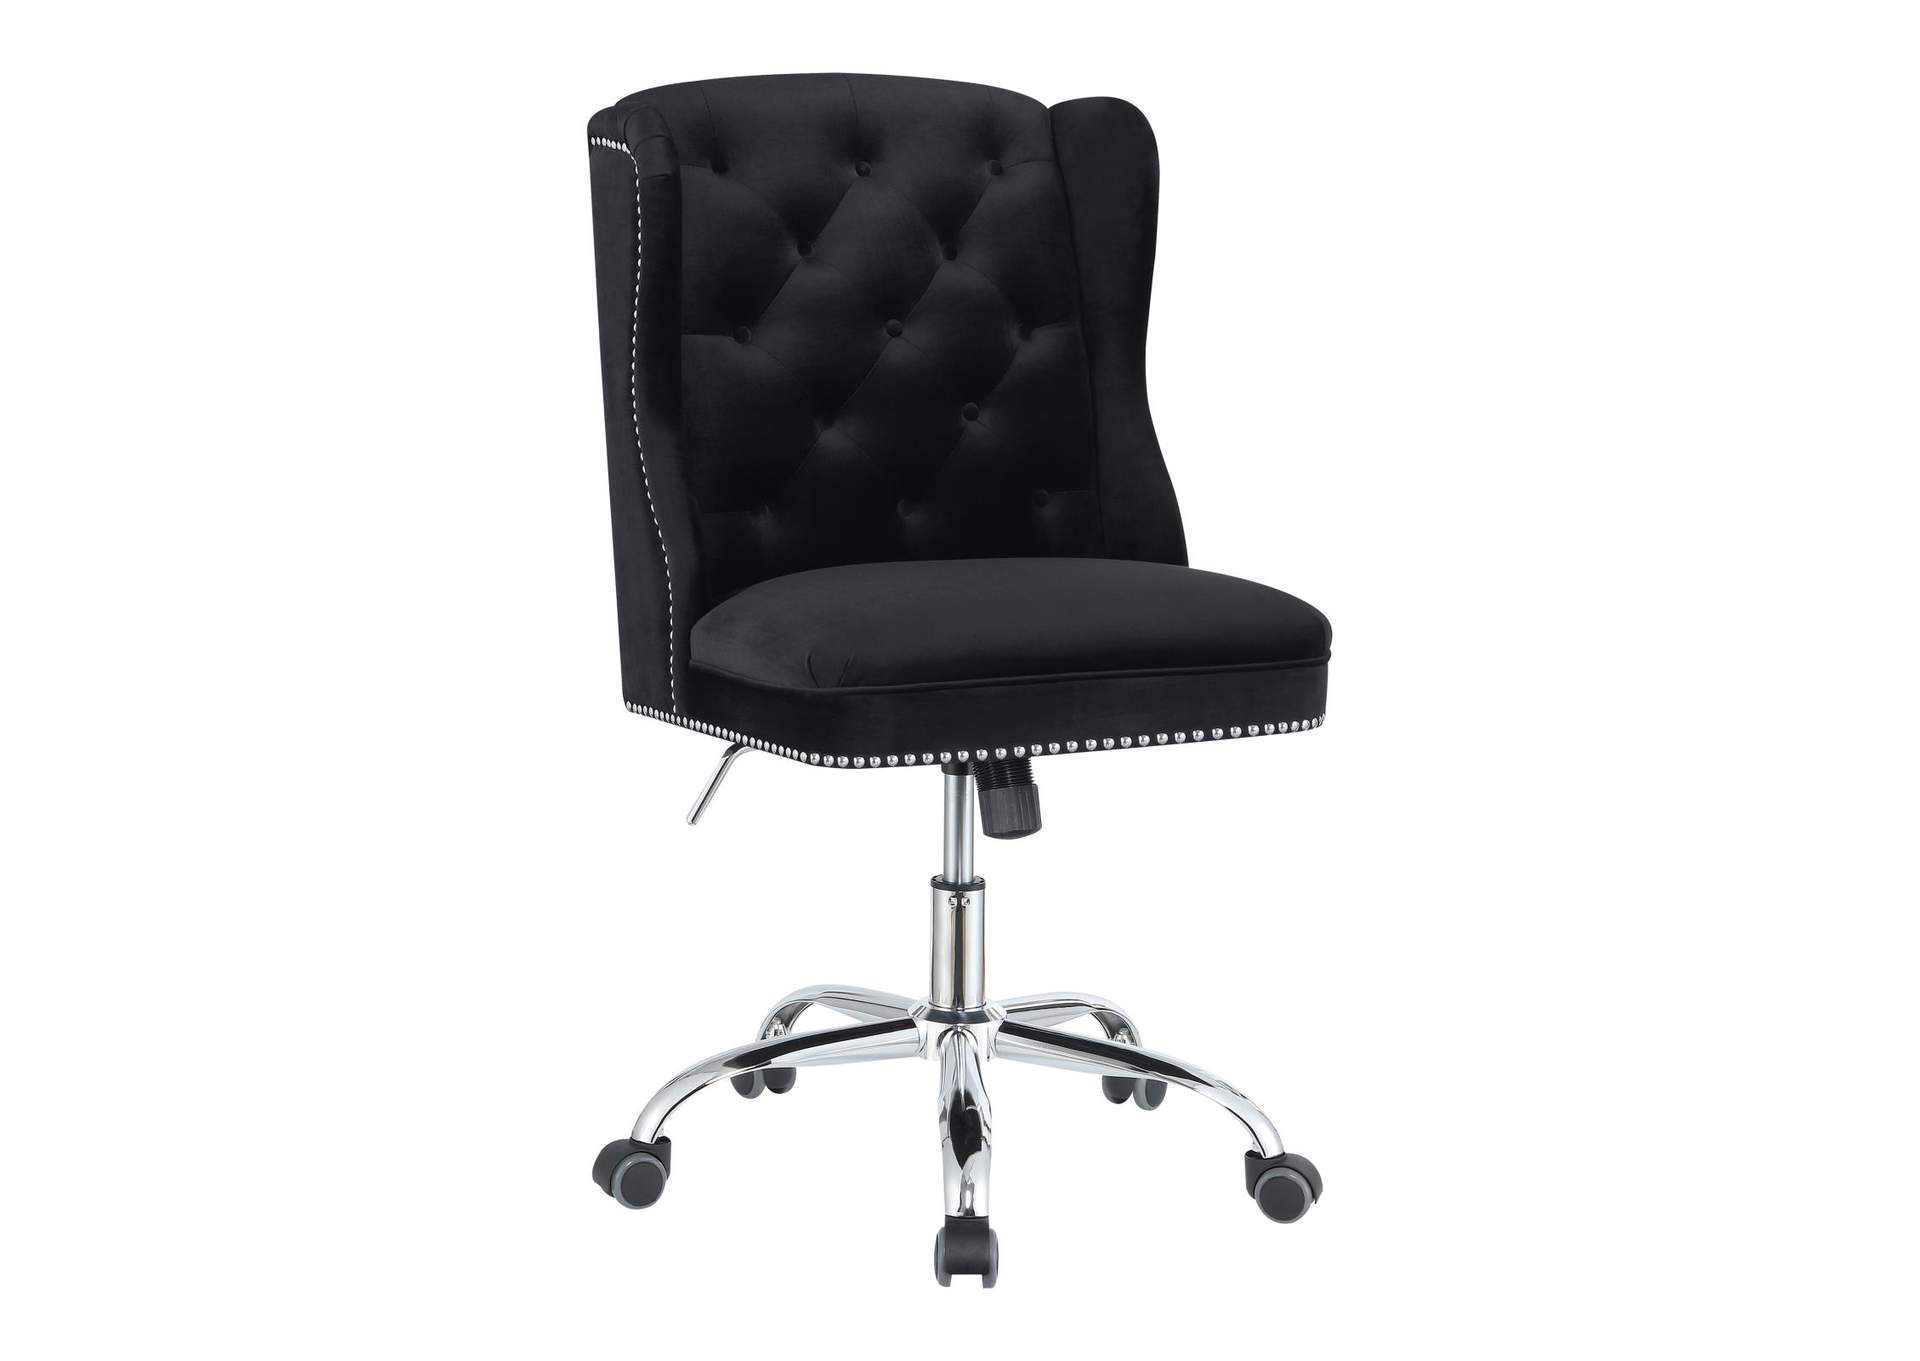 Cod Gray Modern Black Velvet Office Chair,Coaster Furniture